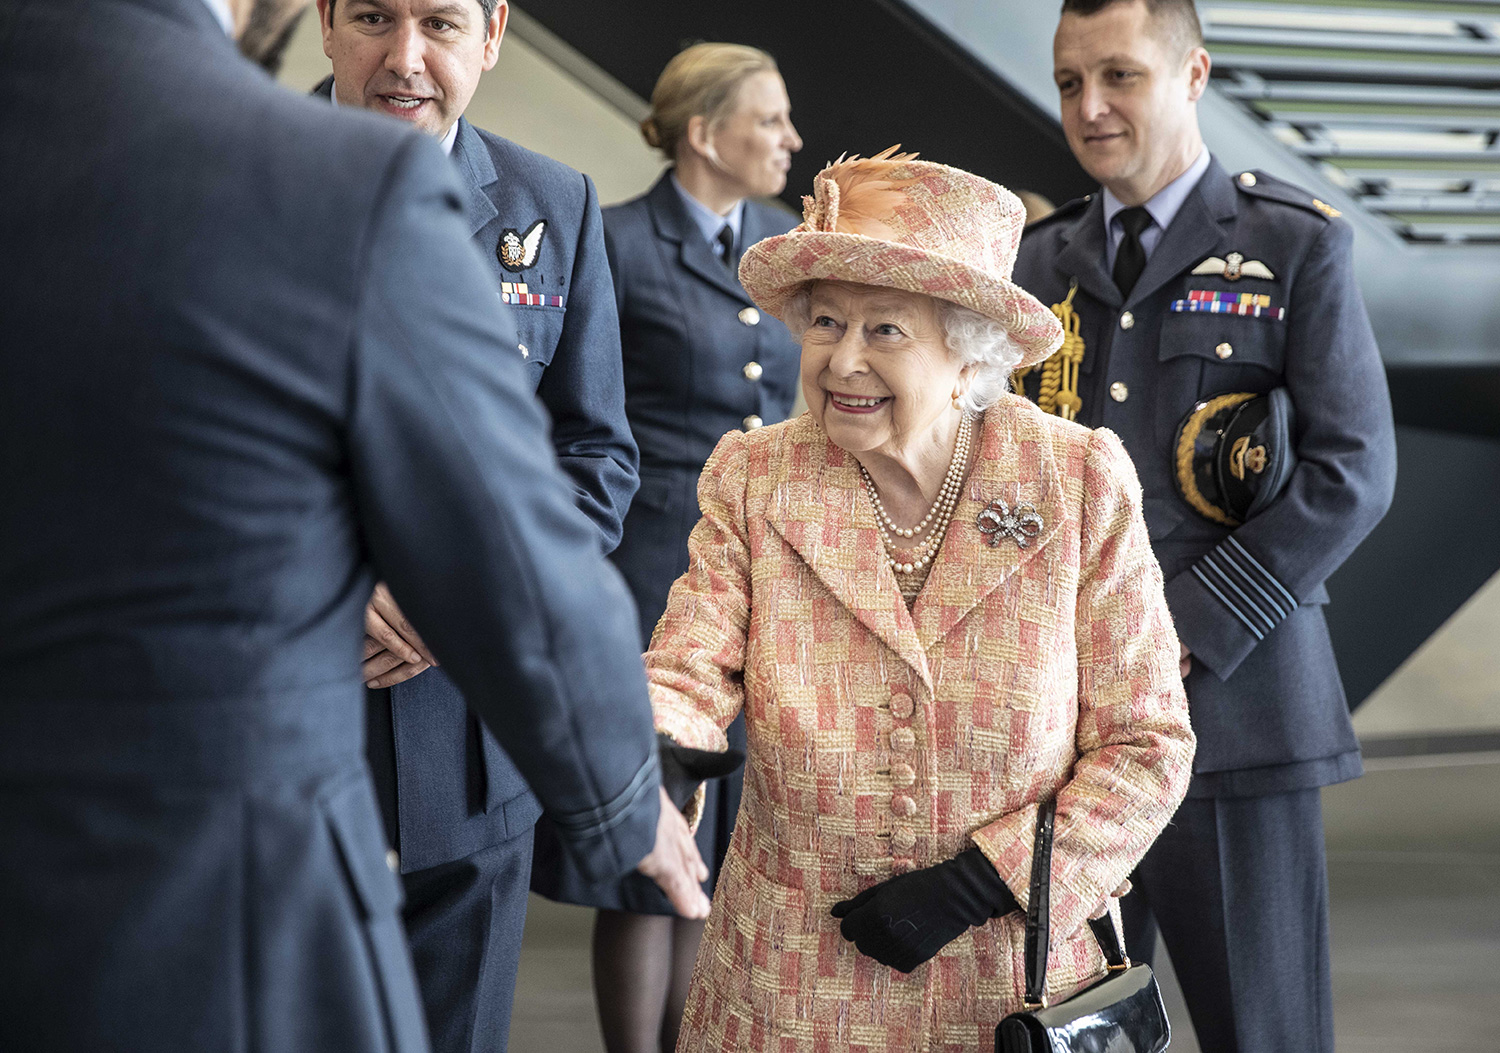 Queen Elizabeth II meets personnel at RAF Marham where she inspected the new integrated training centre that trains personnel on the maintenance of the new RAF F-35B Lightning II strike aircraft at Royal Air Force Marham on February 3, 2020 in King's Lynn, England